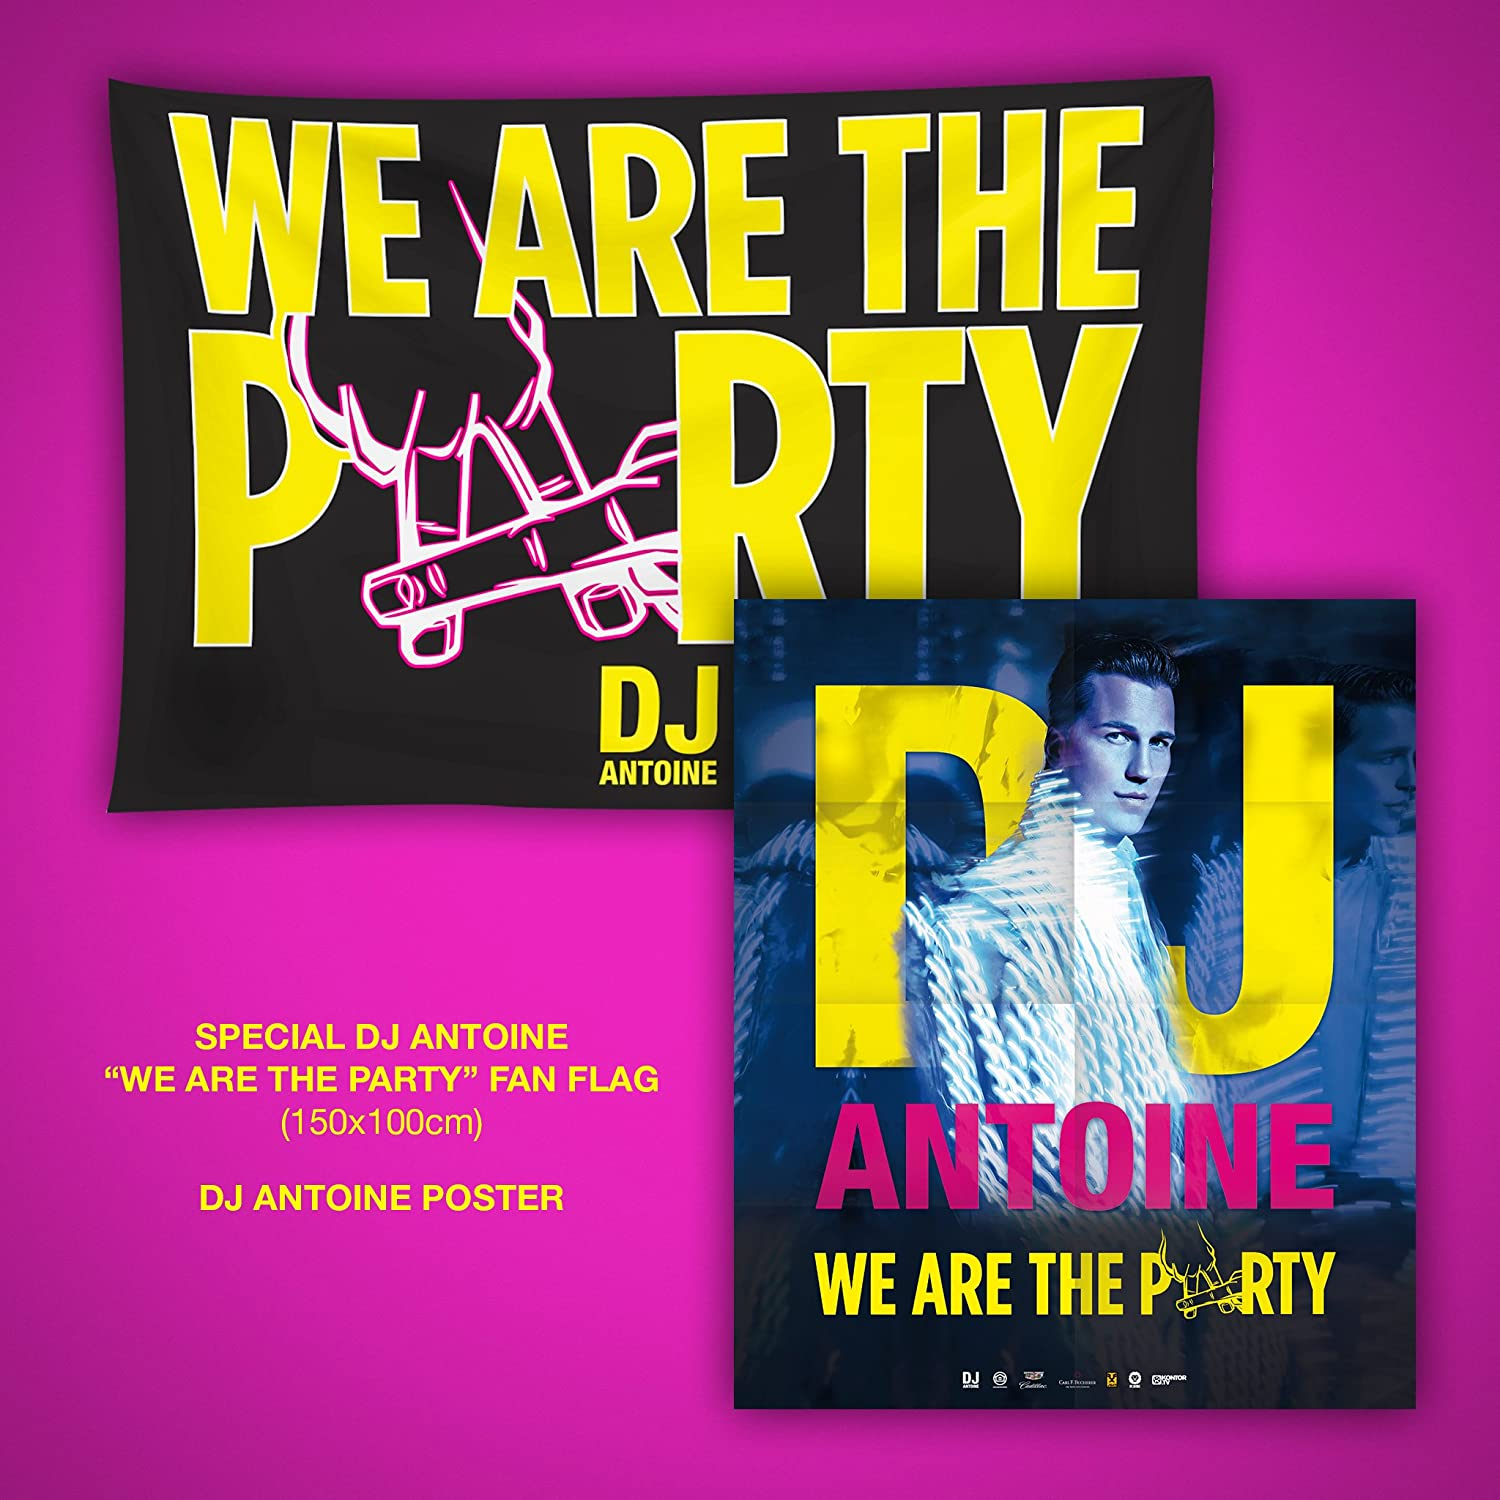 meet me in paris dj antoine 2k14 servers